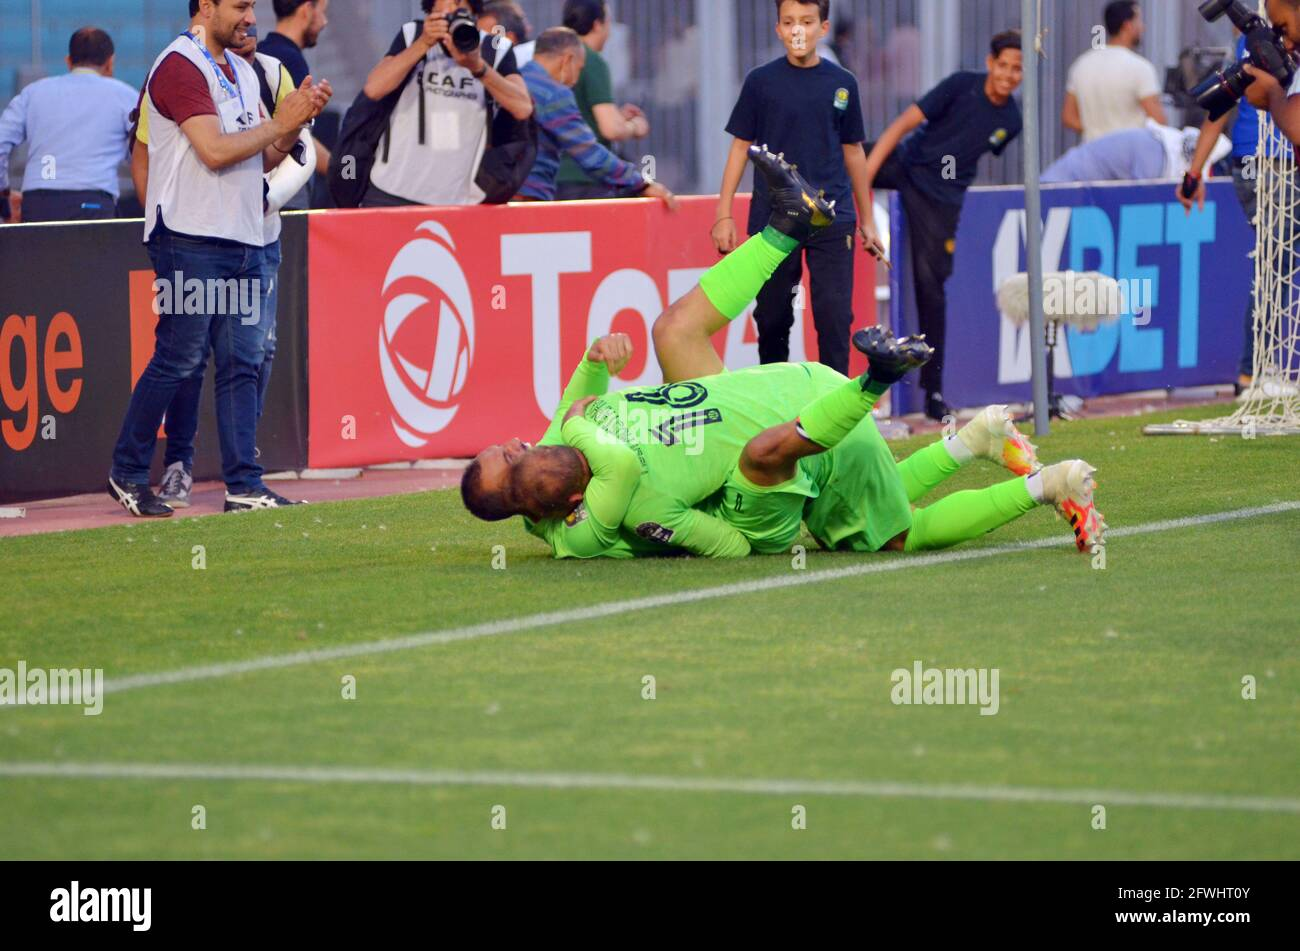 rades-tunis-tunisia-22nd-may-2021-farouk-ben-mustapha16-gk-from-est-who-stops-2-penalties-during-the-penalty-shoot-out-and-offers-the-semi-final-qualification-to-his-team-during-the-african-champions-league-quarter-final-match-between-esperance-sportive-de-tunis-est-and-cr-belouizdad-from-algeria-at-rades-stadiums-photo-yassine-mahjoub-credit-chokri-mahjoubzuma-wirealamy-live-news-2FWHT0Y.jpg